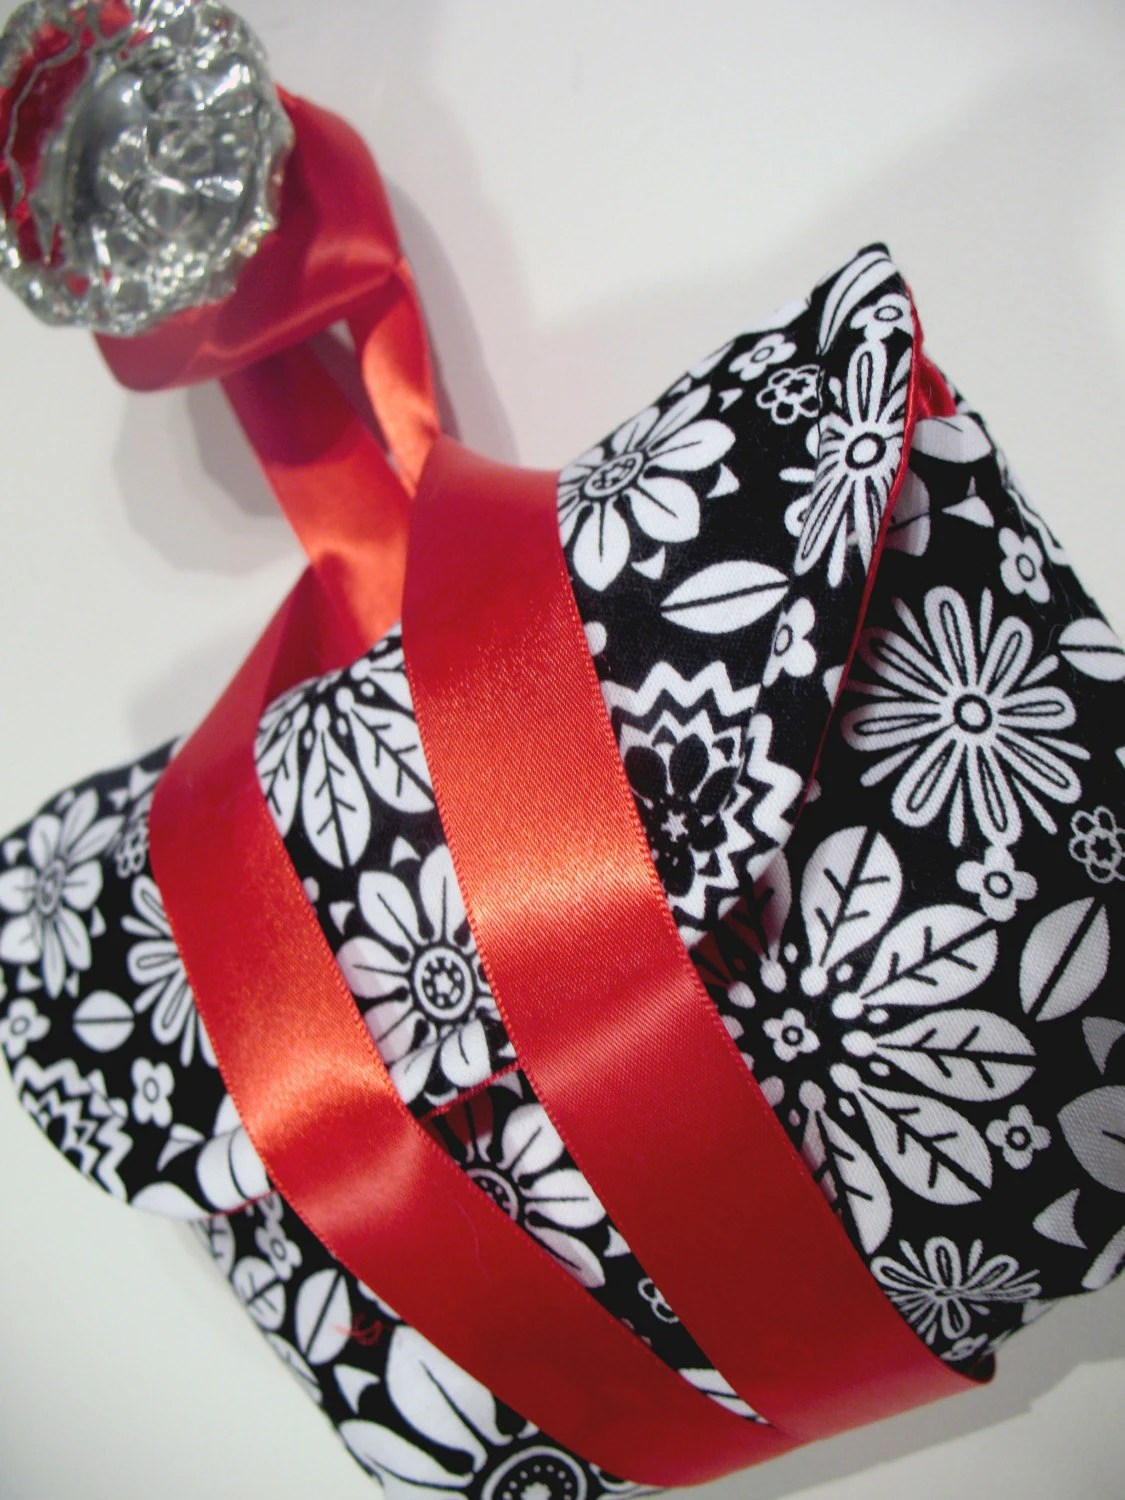 Black and White Floral Camera Wristlet by Megnificent Made